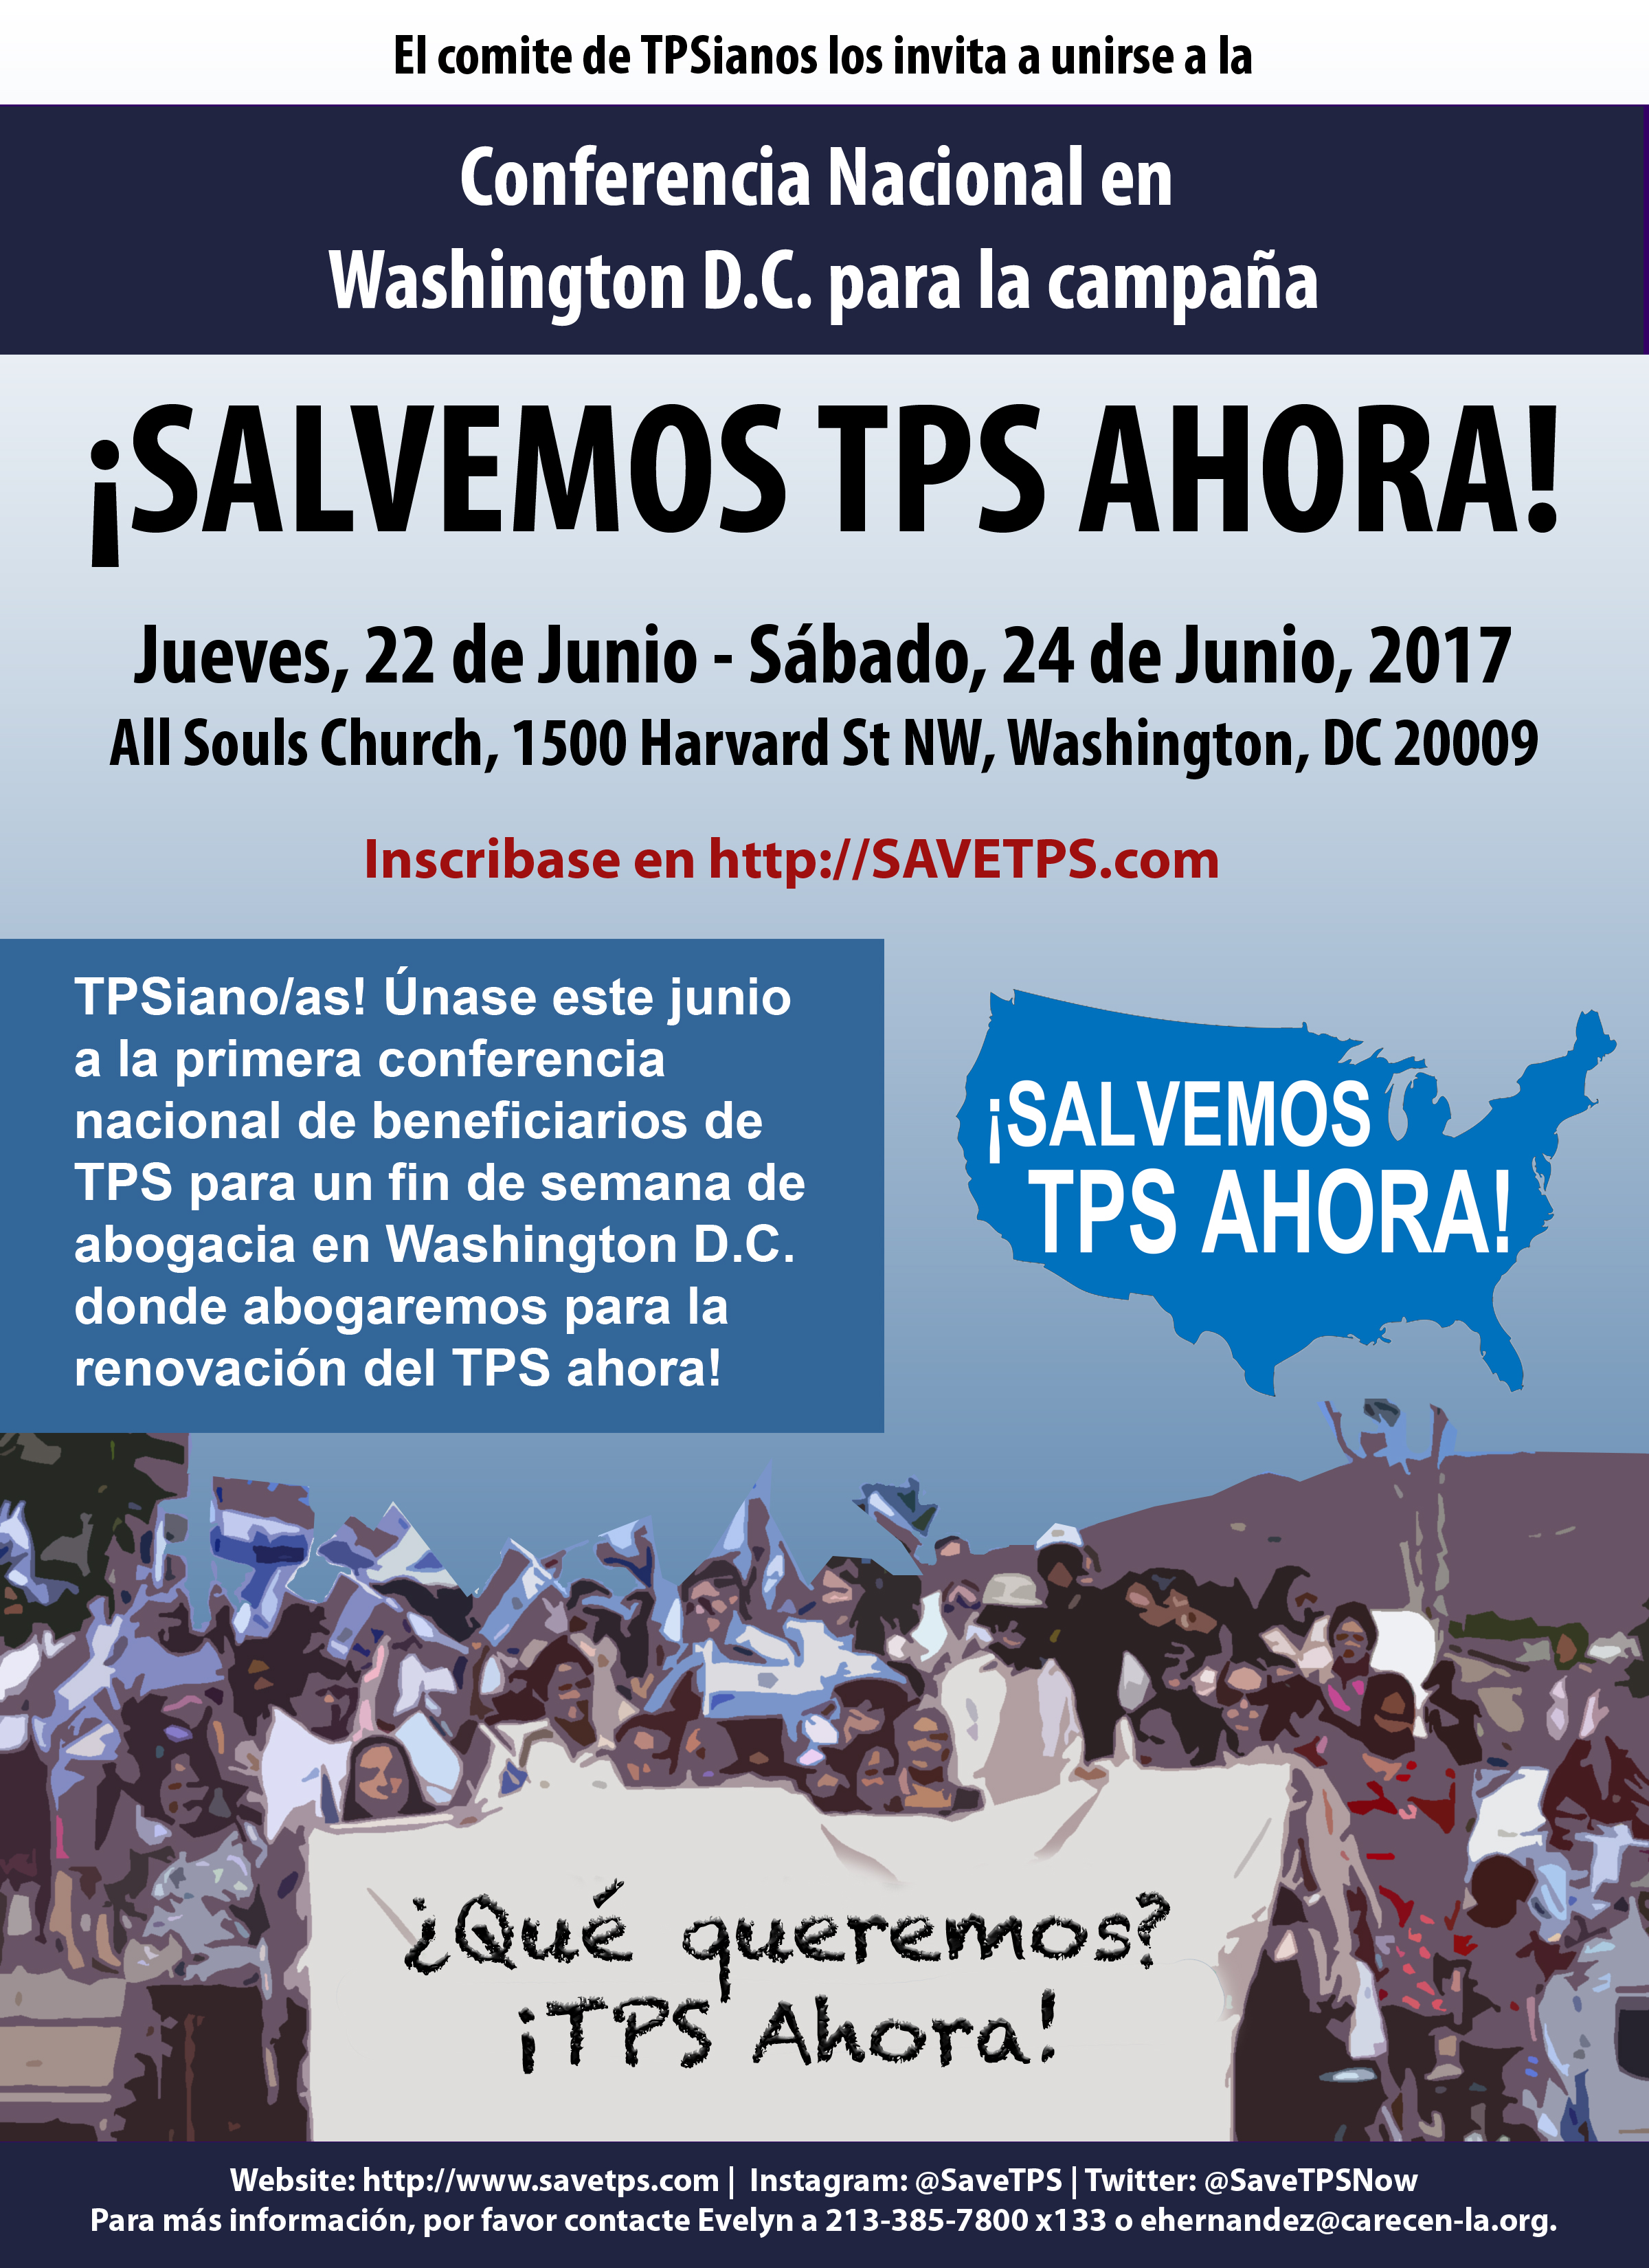 TPS_National_Convention_Flyer3.jpg